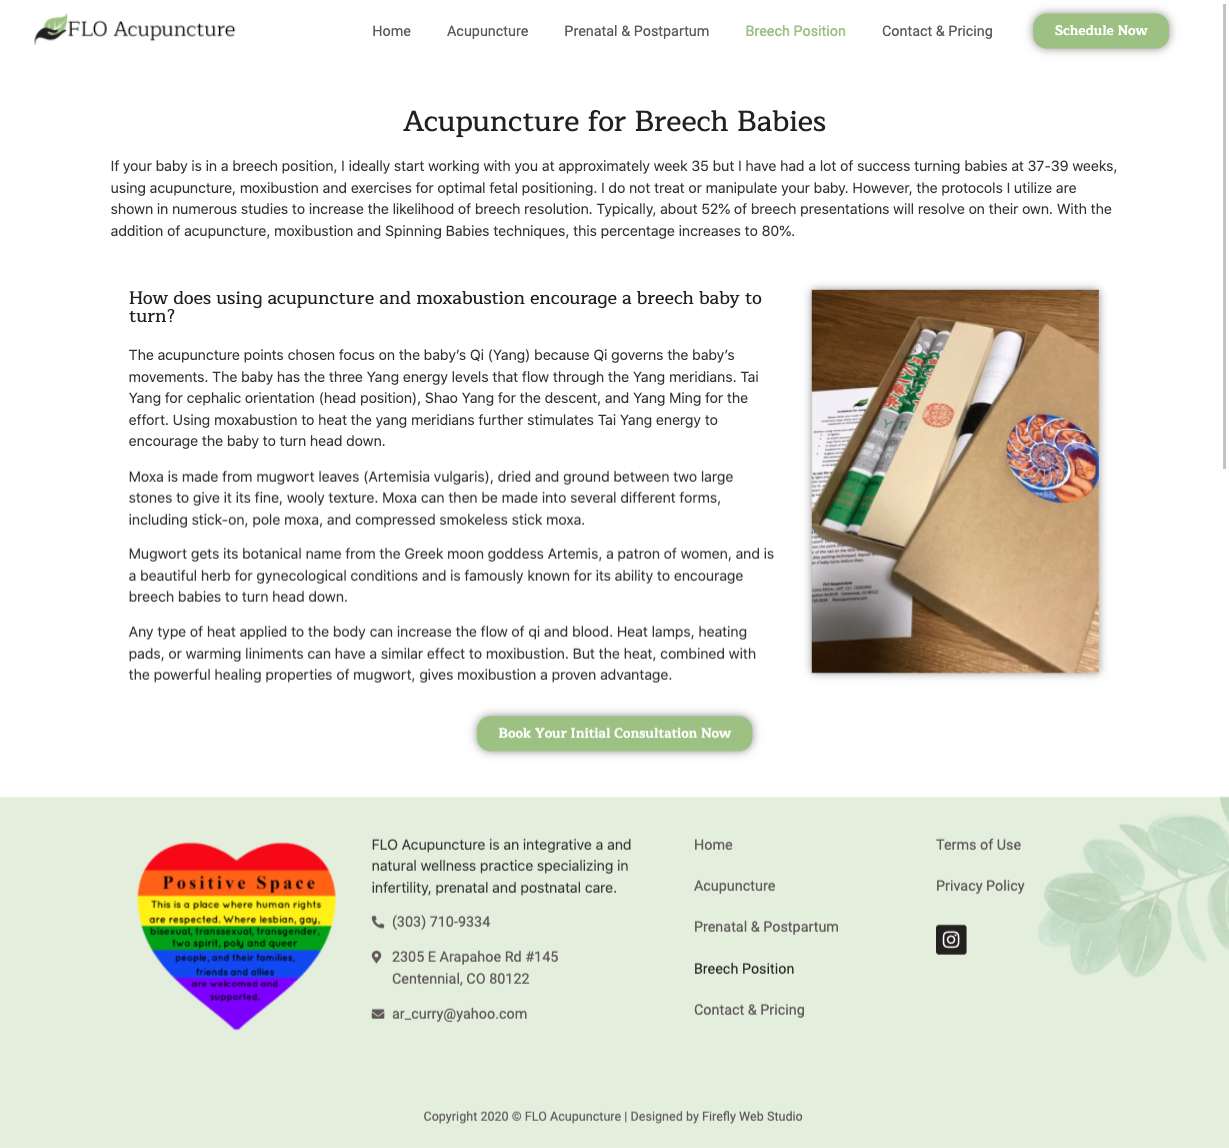 breech services page for acupuncture